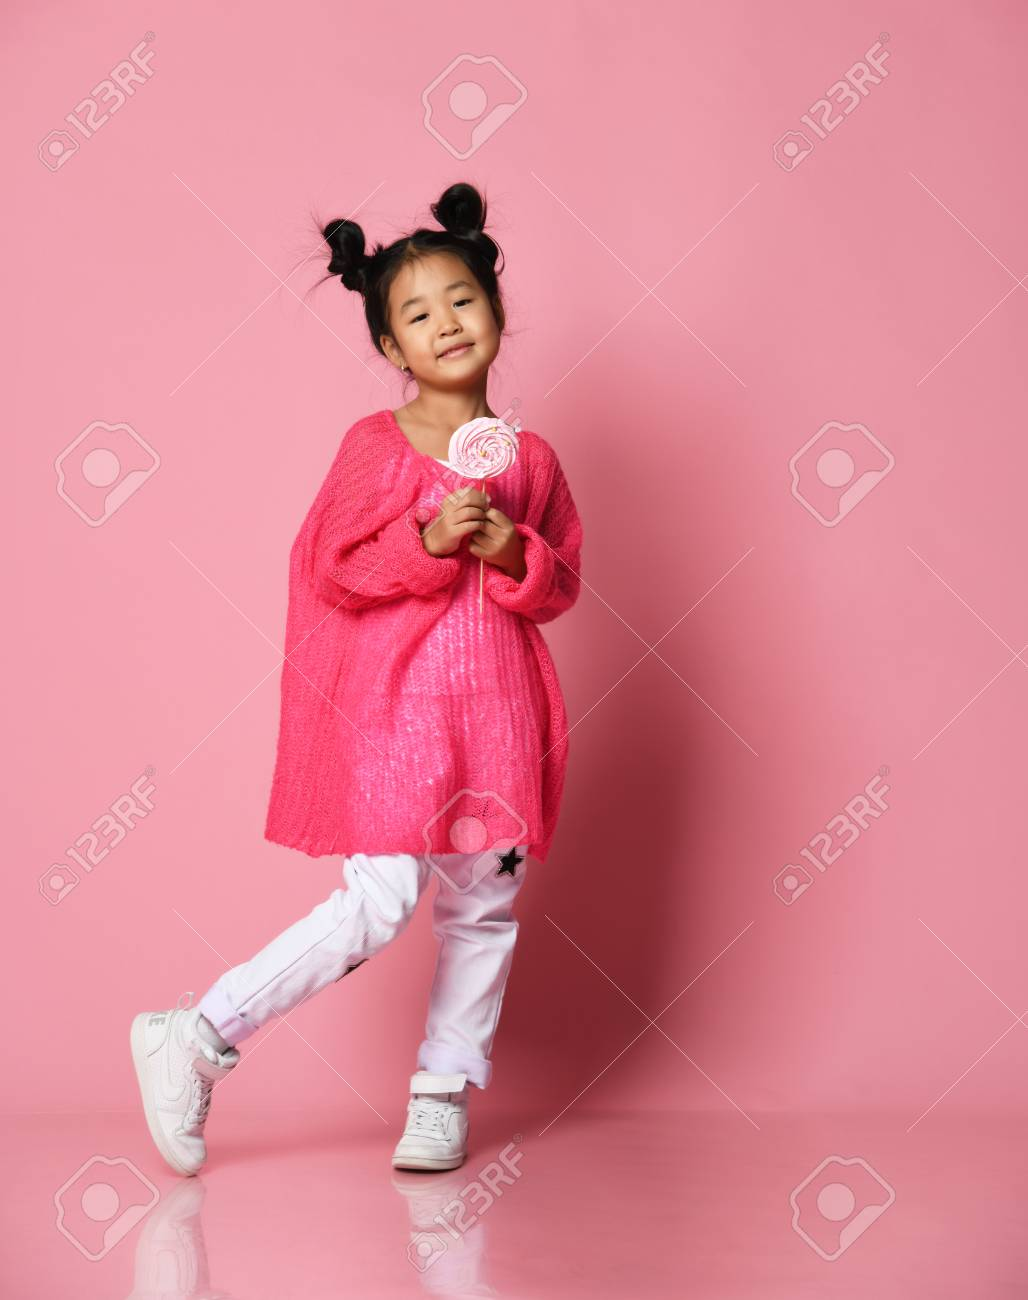 Happy young asian little girl kid lick eat happy big sweet lollypop candy on pink background - 114809662